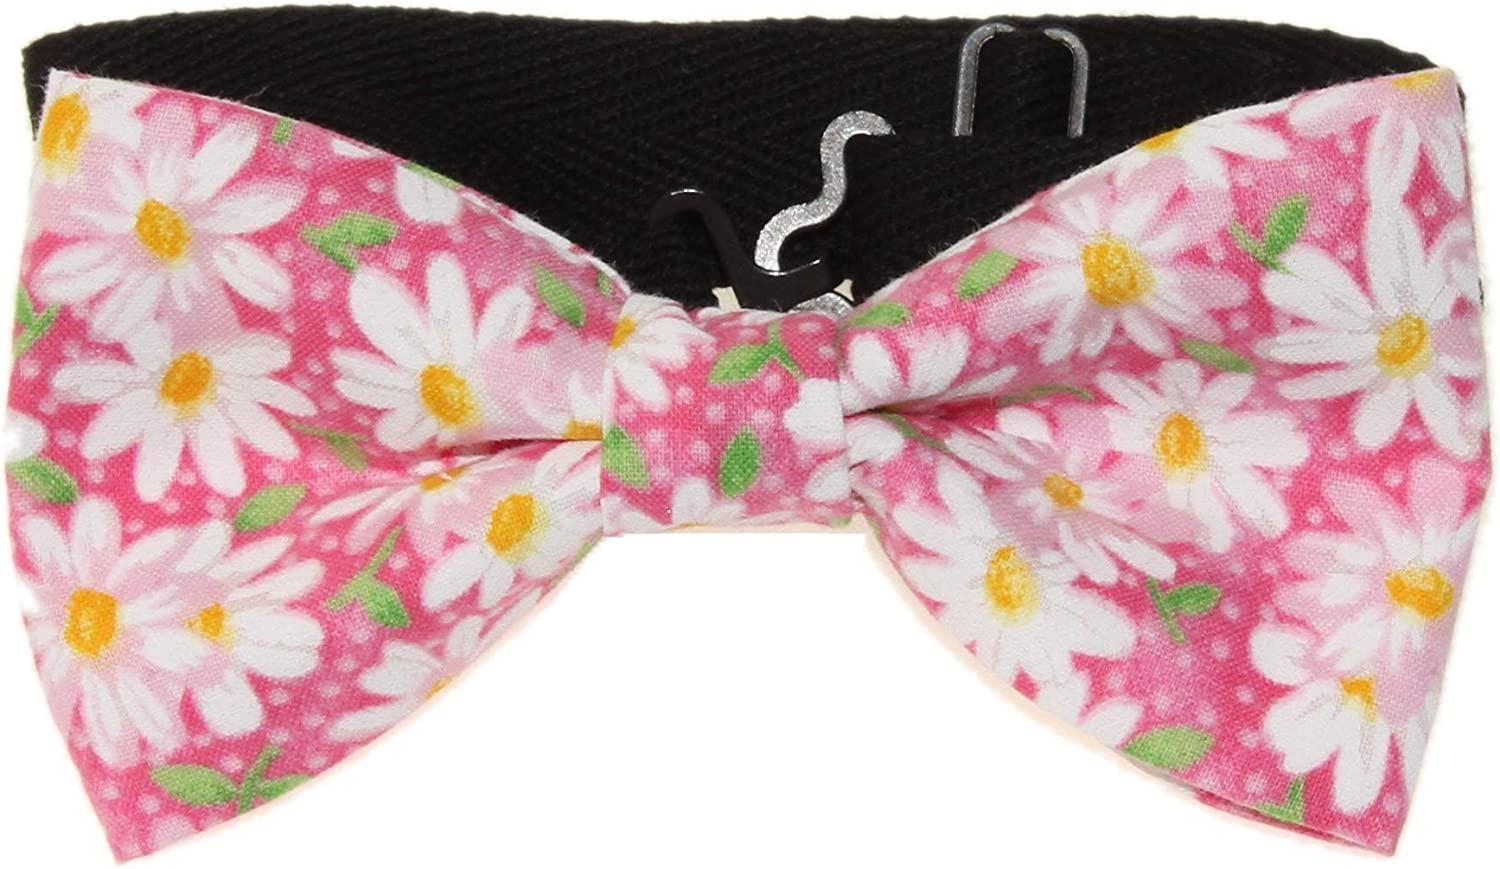 Men's Pink White Daisies Floral Pre-Tied Adjustable Cotton Bow Tie